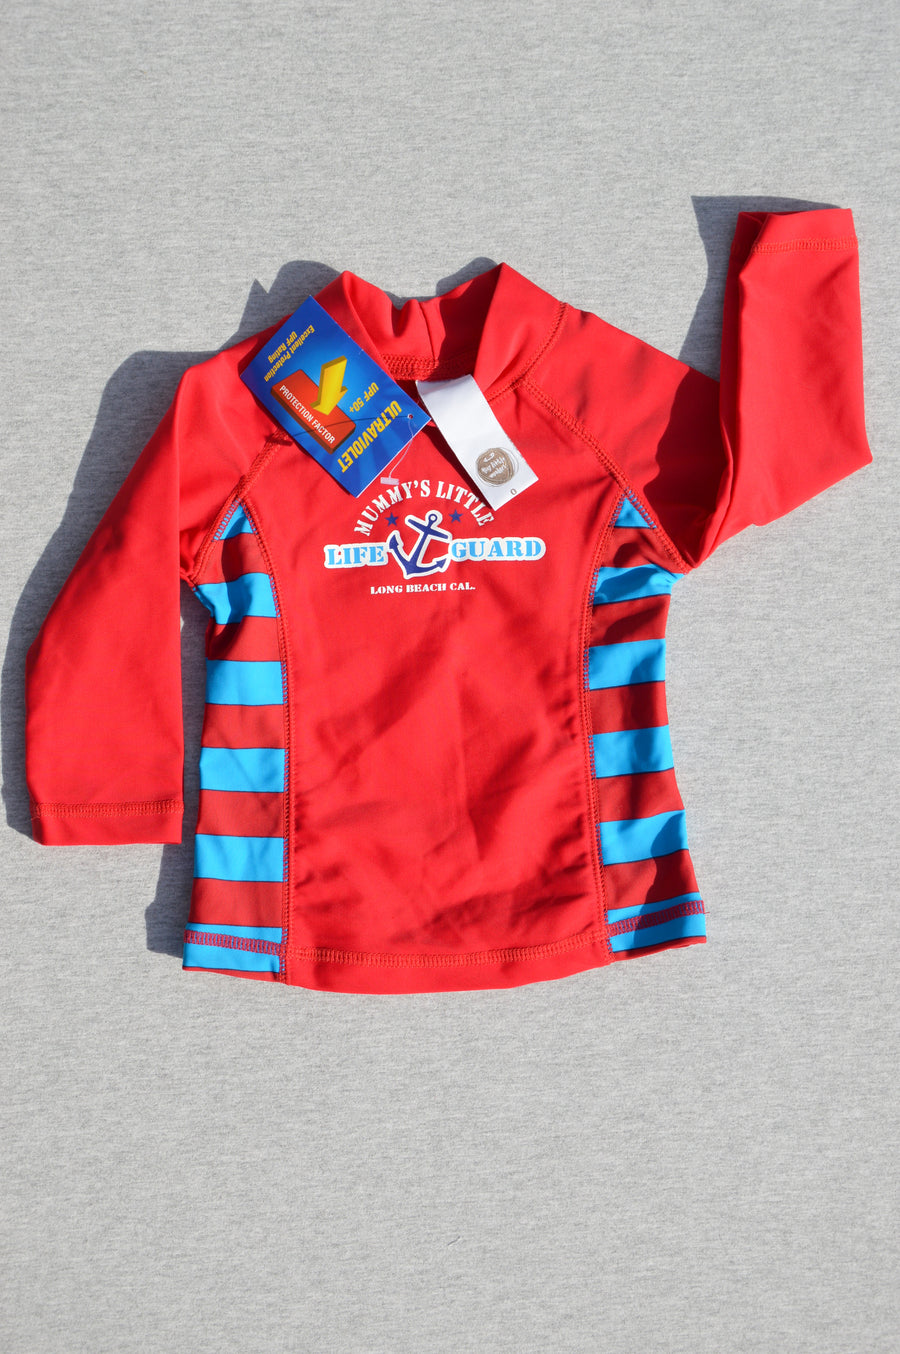 Tiny Little Wonders - brand new - red long-sleeved rash vest UPF 50+, size 6-12m